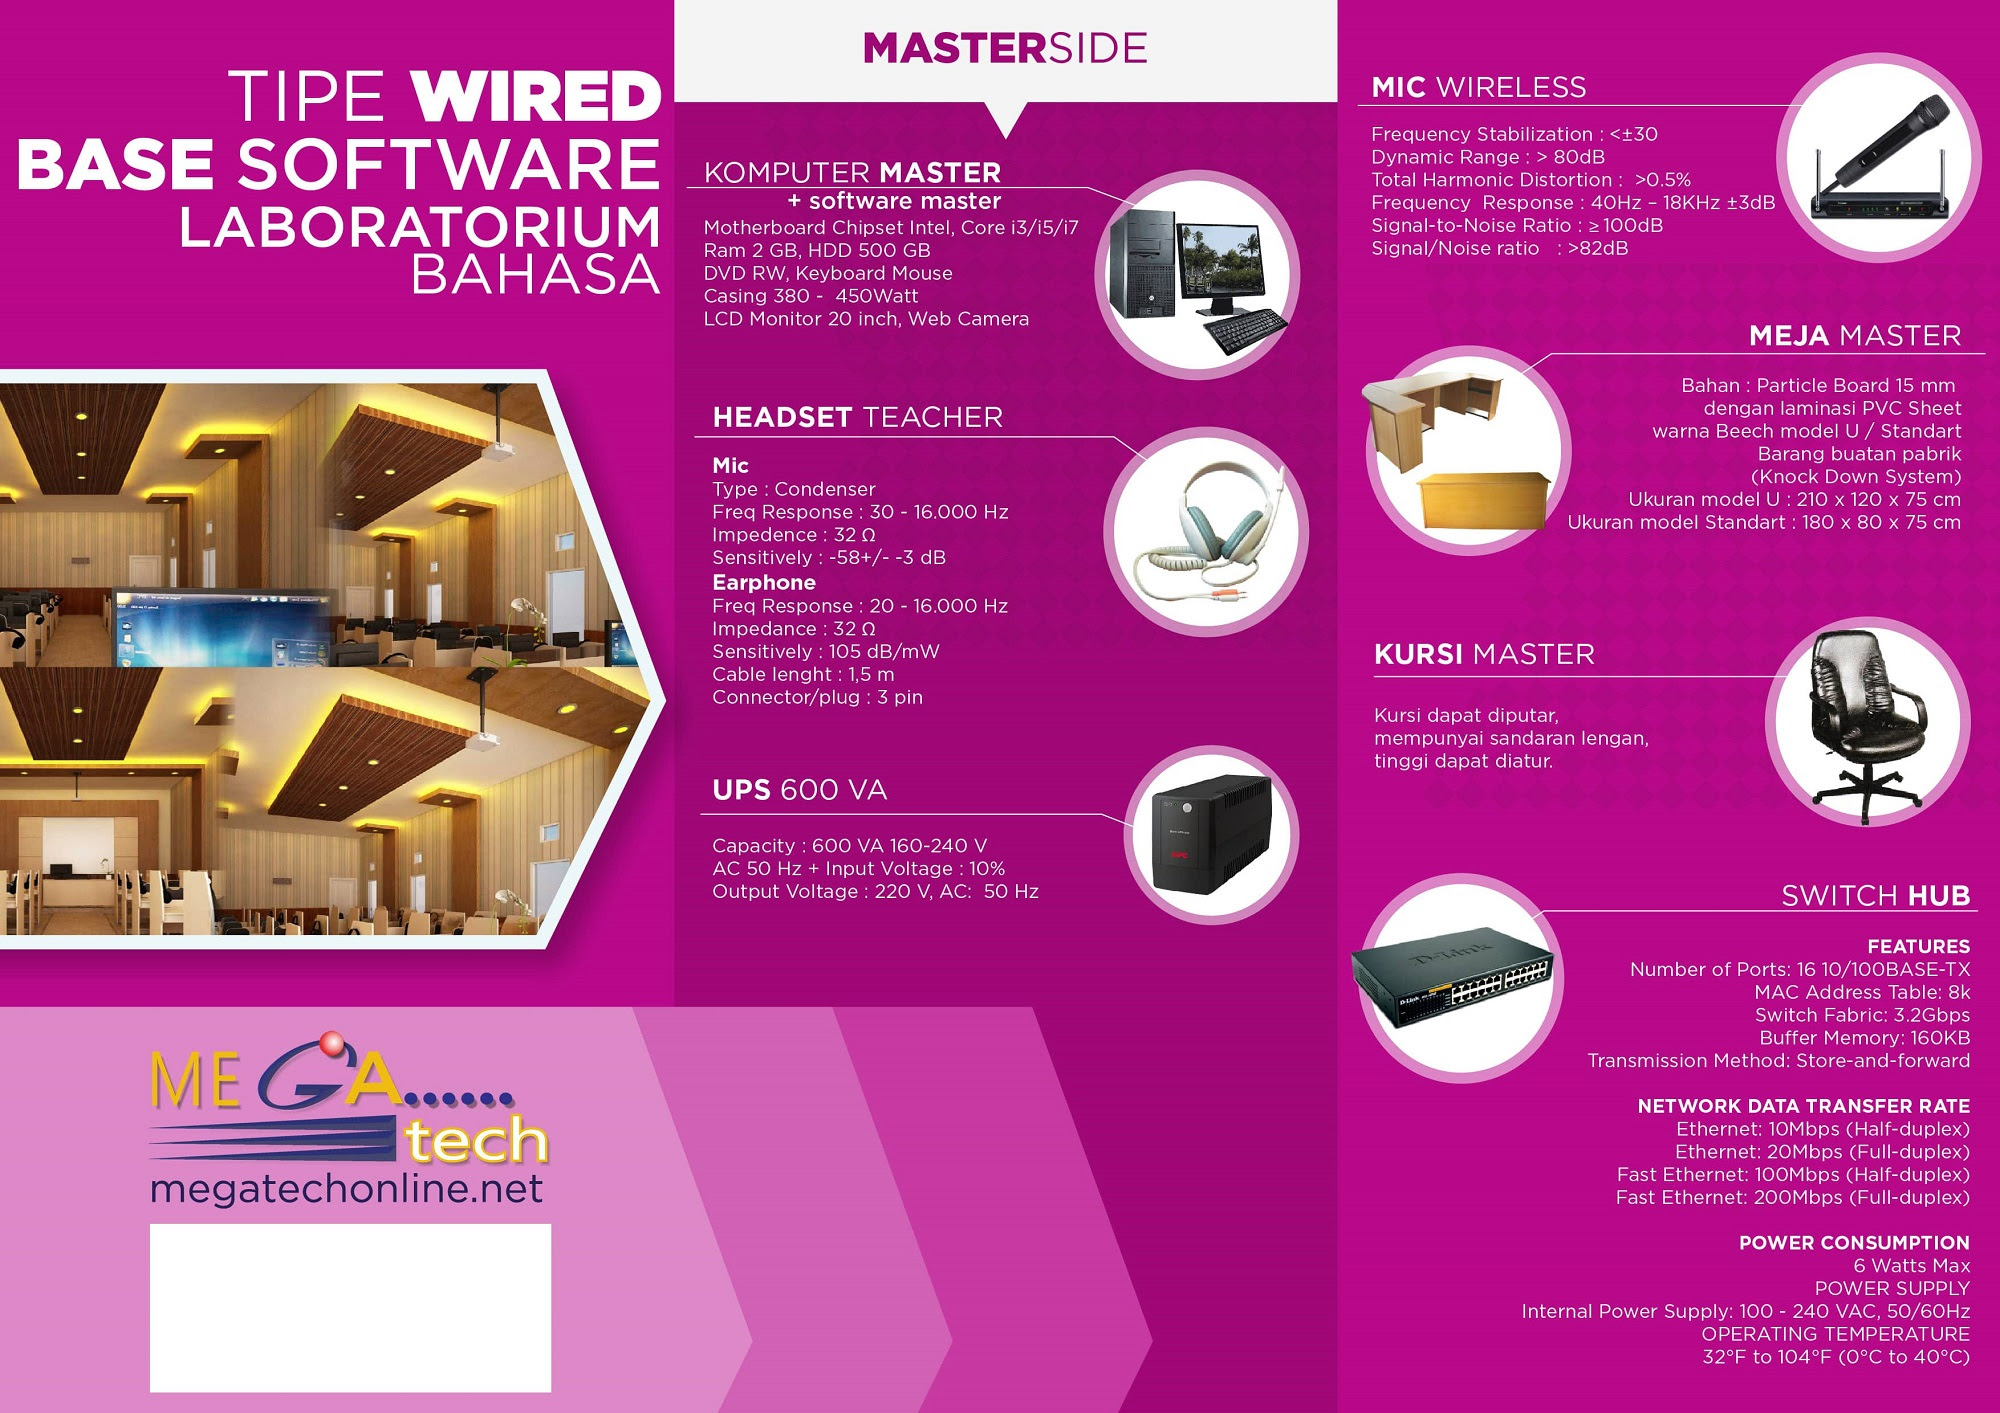 Laboratorium Bahasa Base Software WIRED Master Lab Bahasa